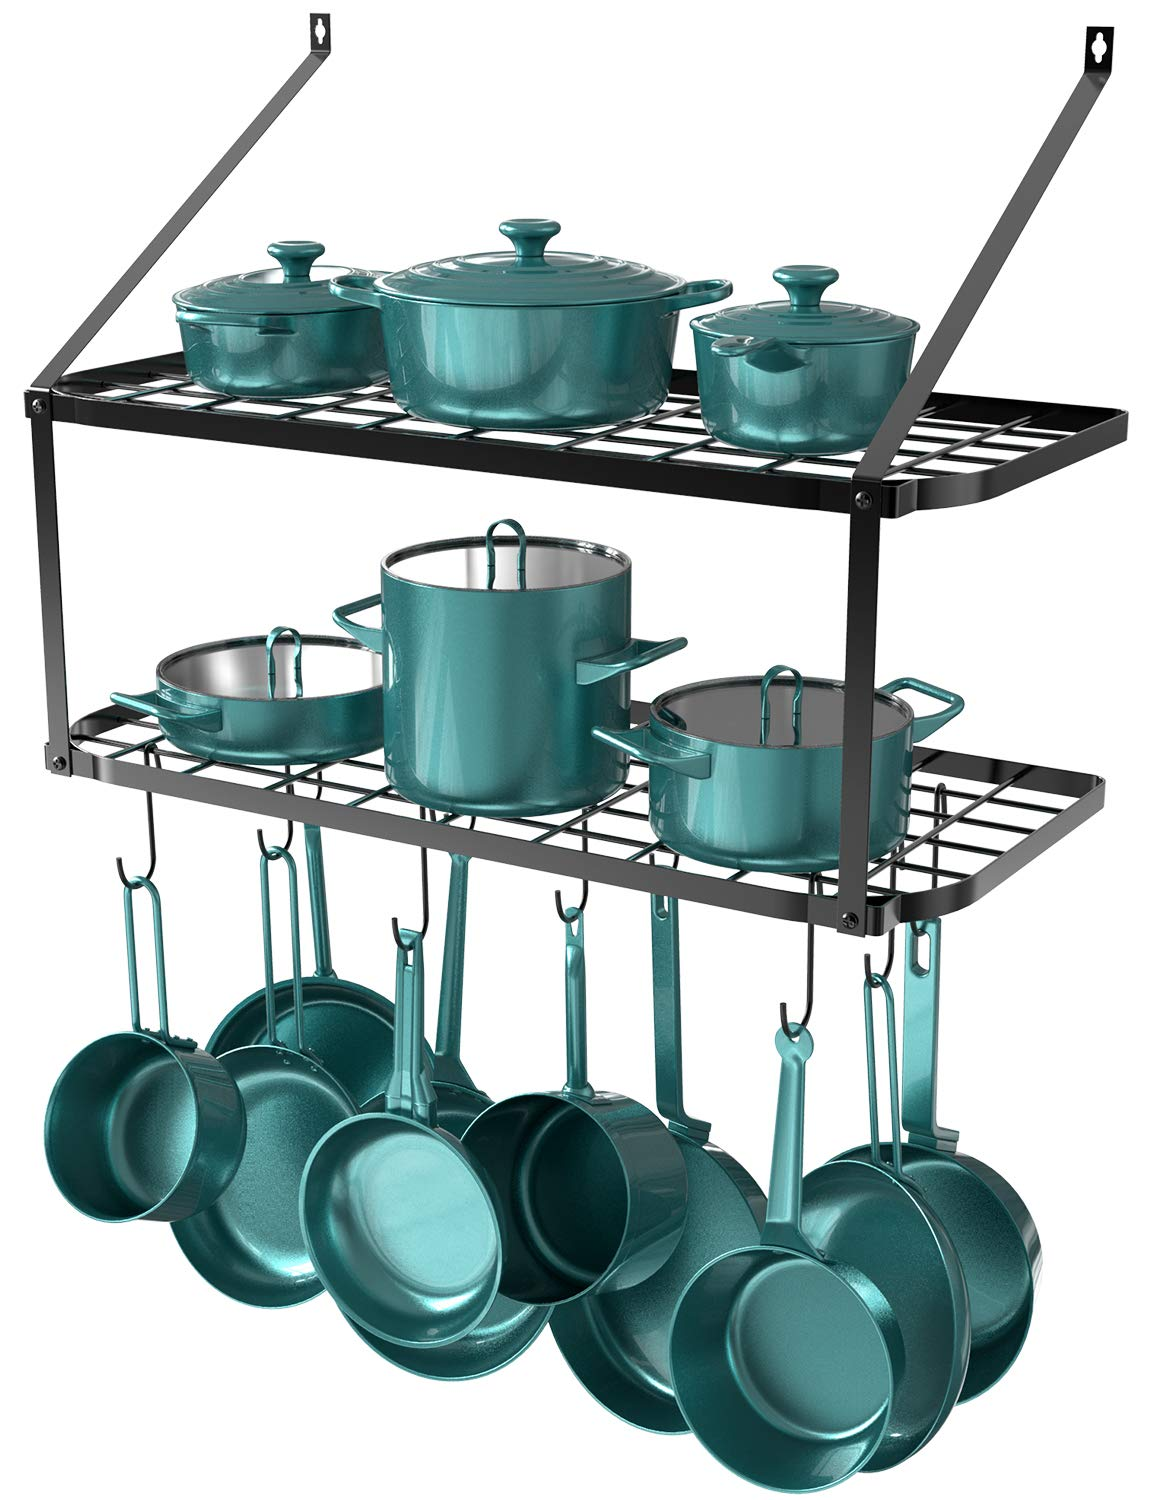 GeekDigg 29.5 Inch Wall Mounted Pot Rack Storage Shelf with 2 Tier 10 Hooks Included, Pantry Organization and Storage, Kitchen Hanging Storage Organizer (Black) by GeekDigg